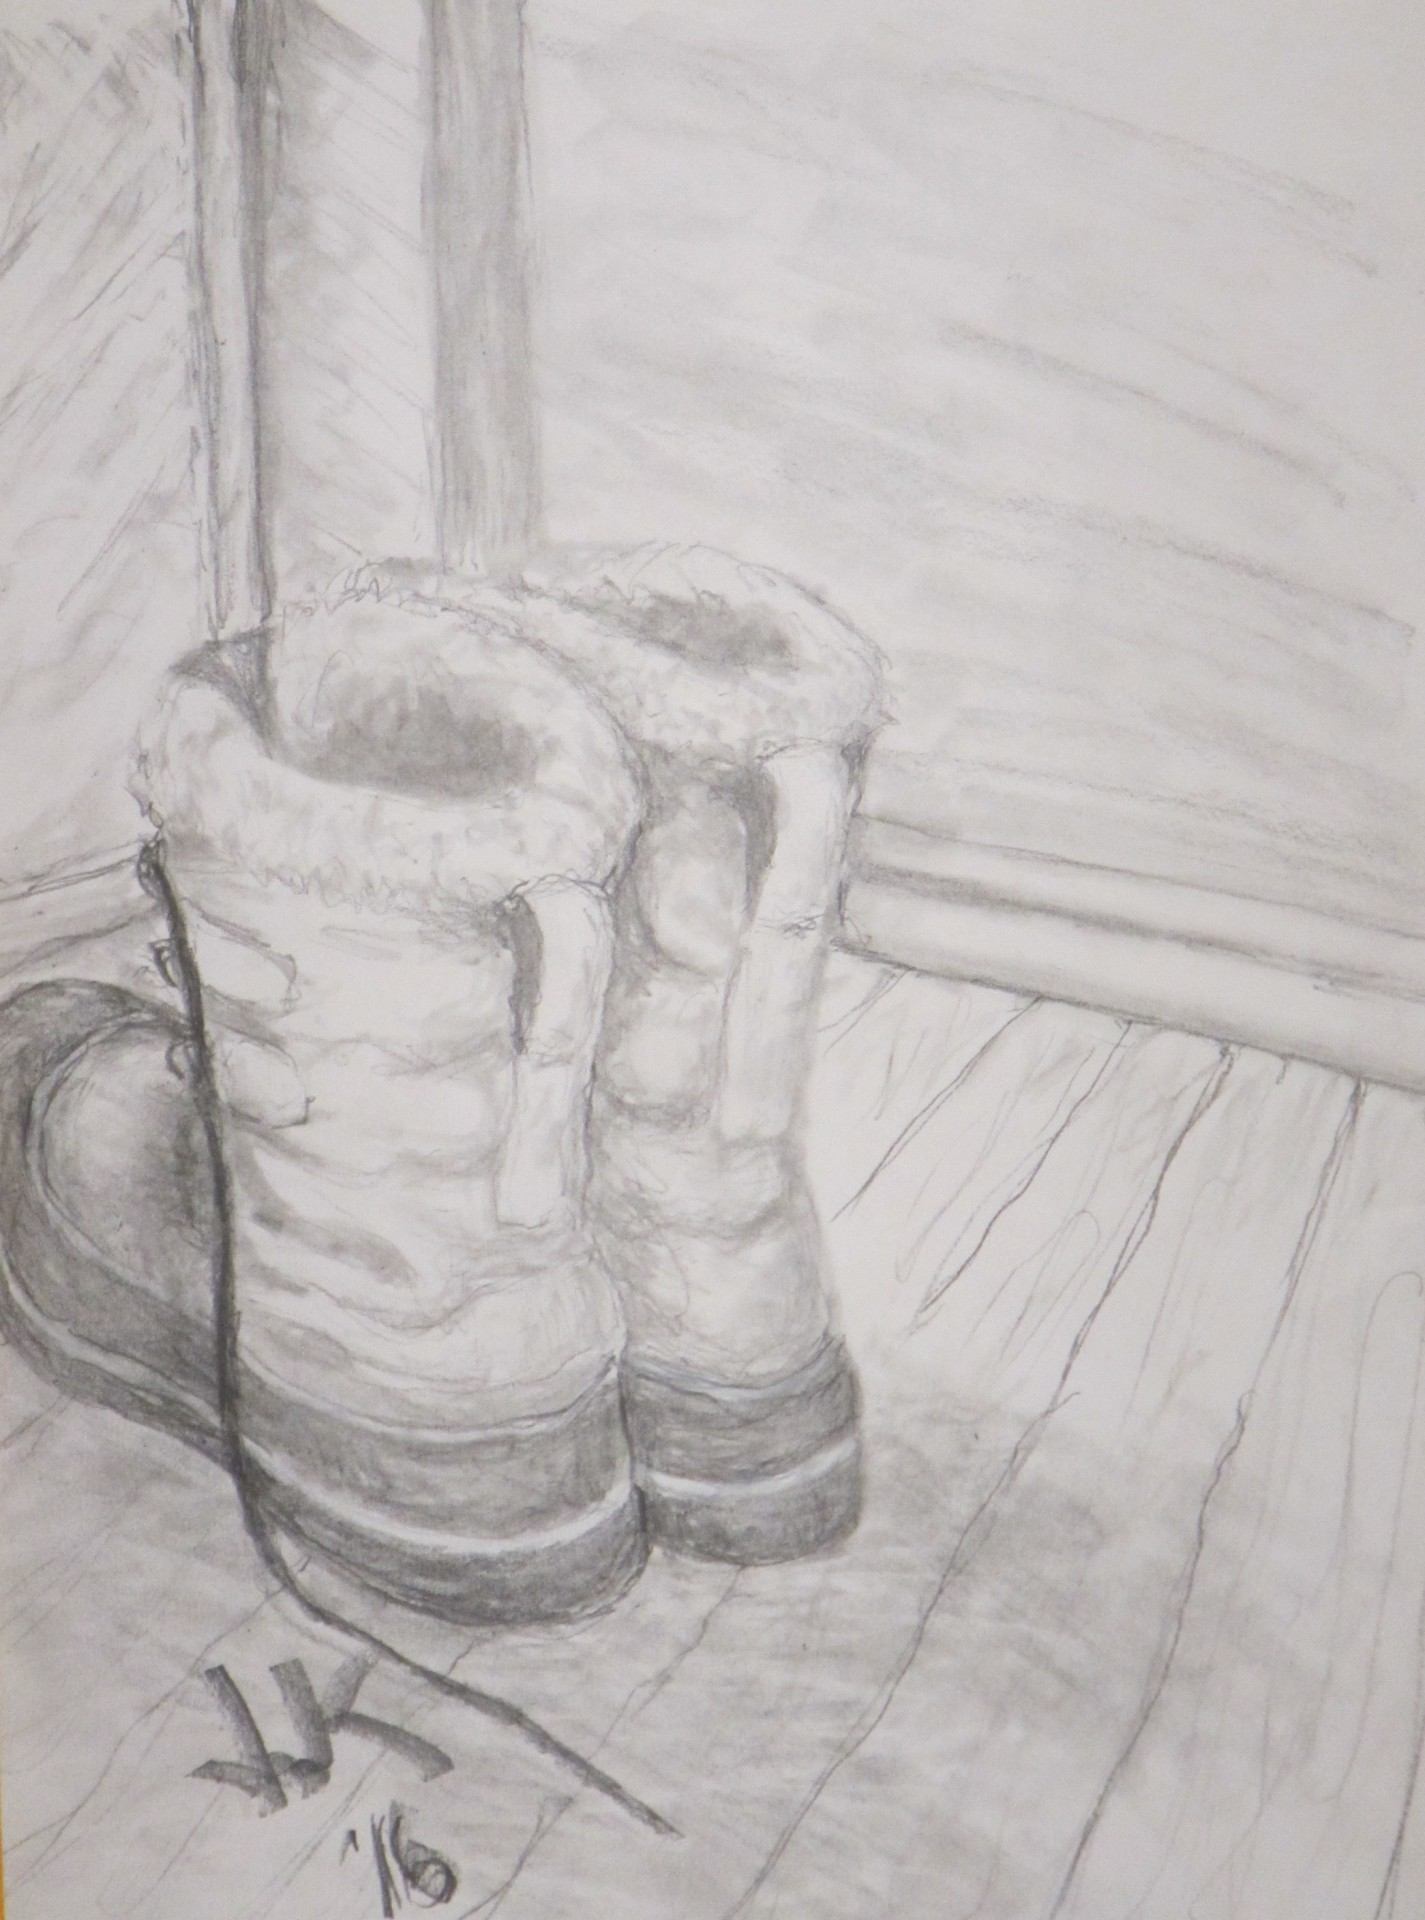 Pencil drawing of a pair of snow boots waiting by door.